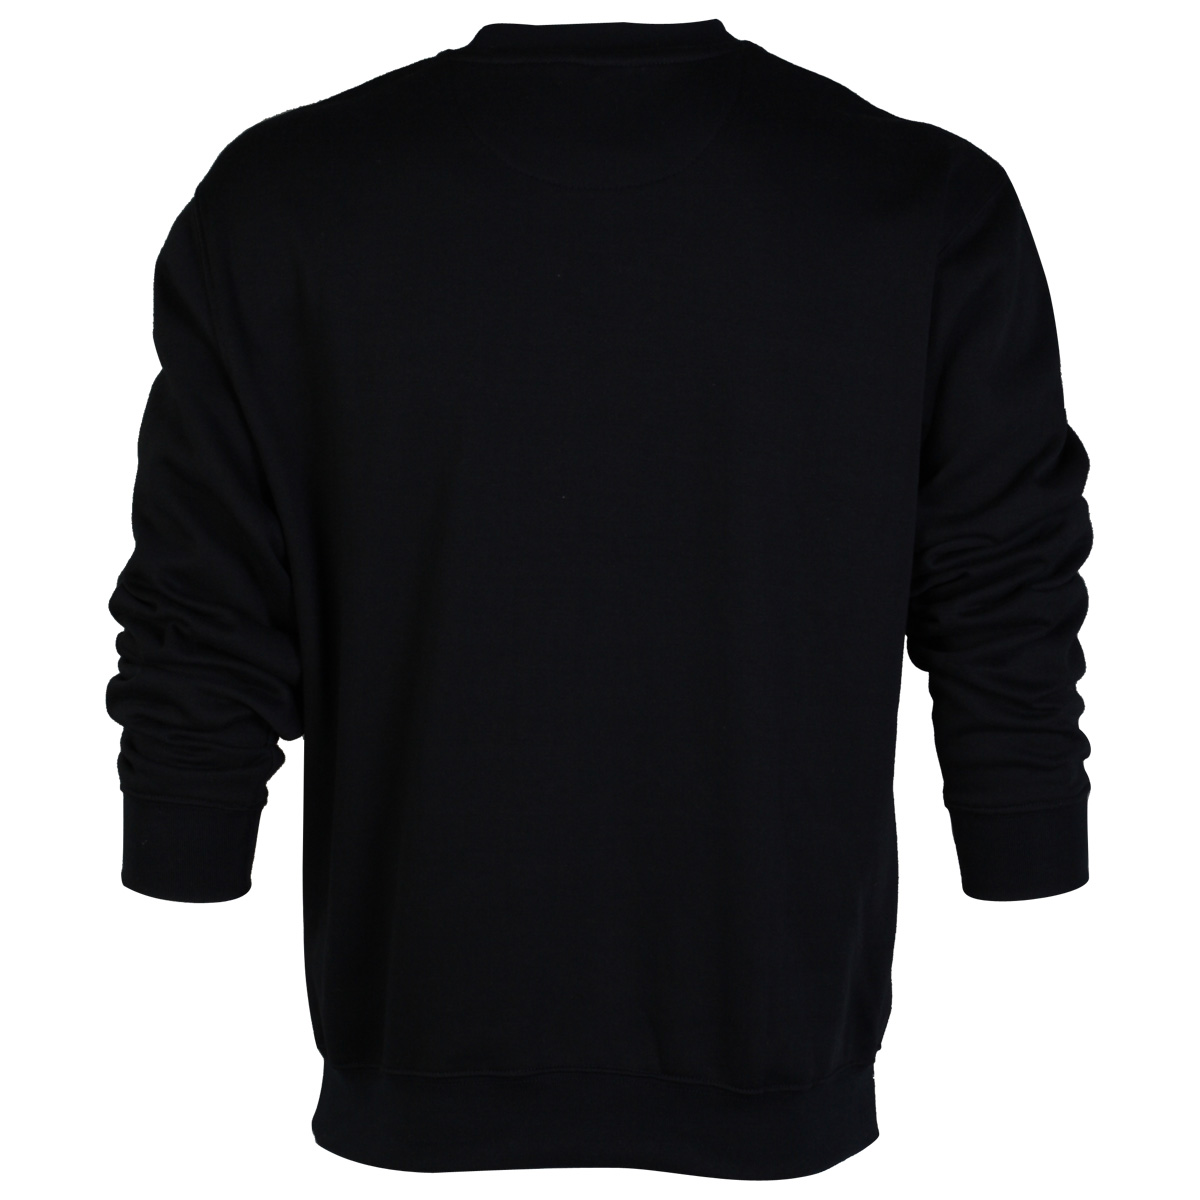 mens kam jeans k502s crew neck plain sweater jumper top sweatshirt